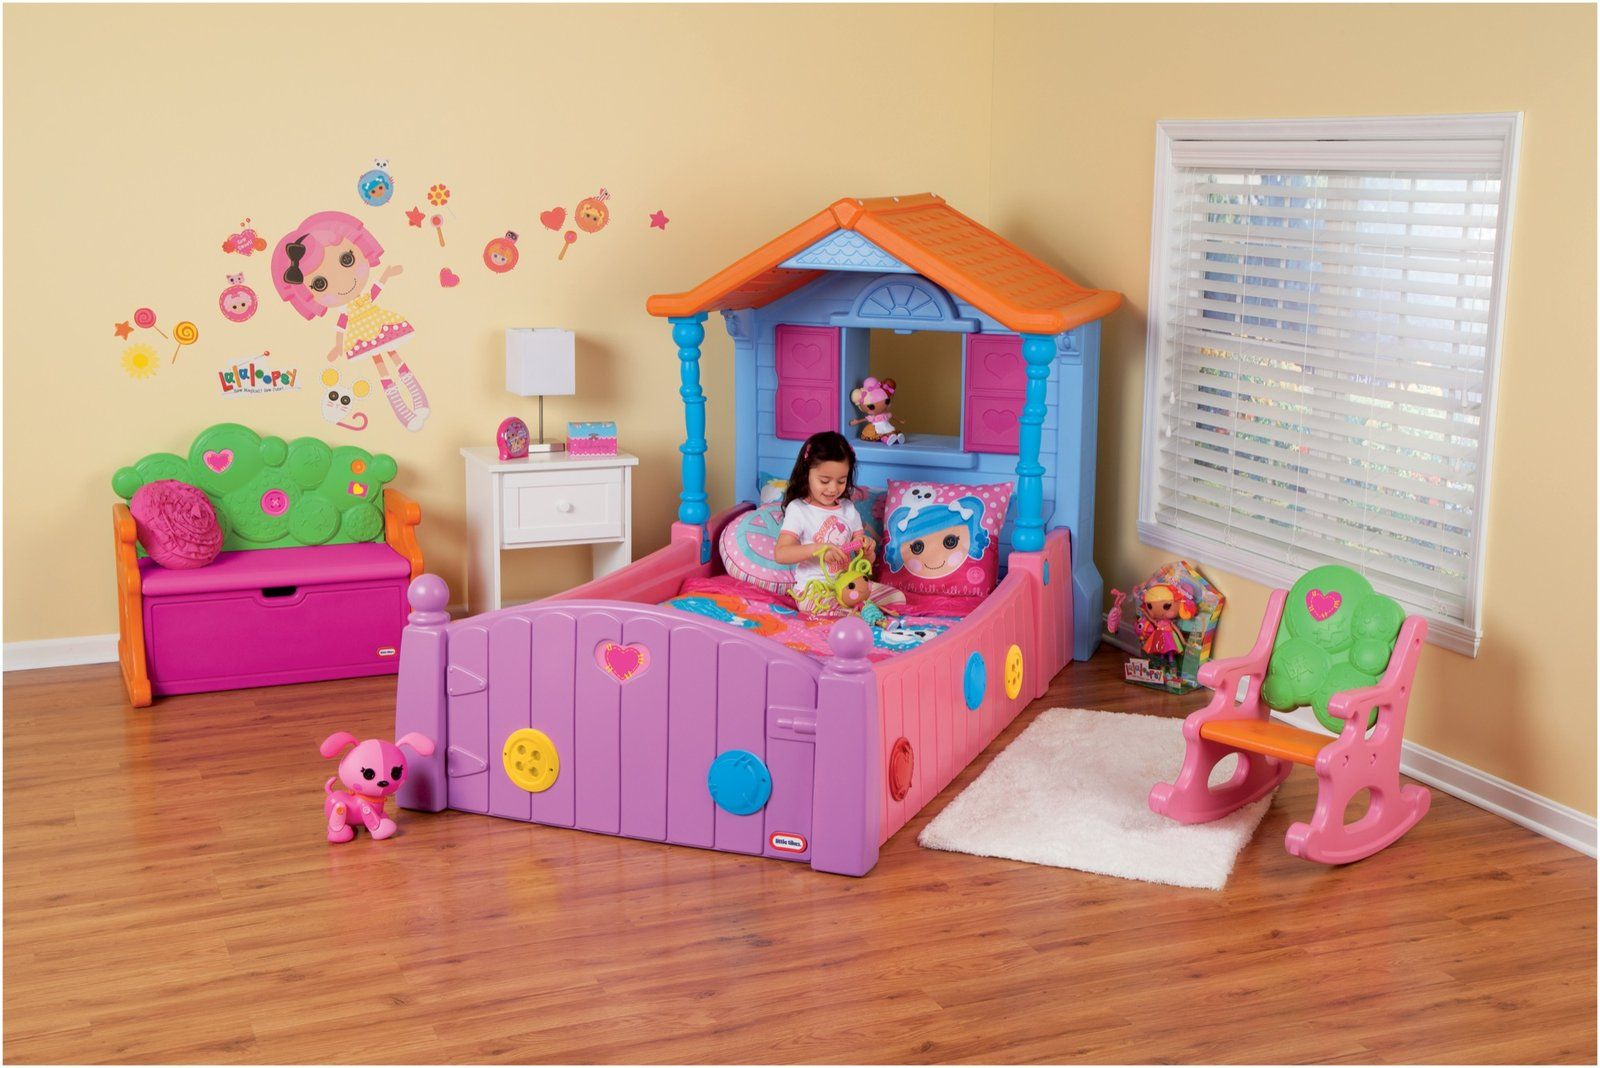 LALA LOOTSIE BEDROON DECOR AND FURNITURE Home > Toddler